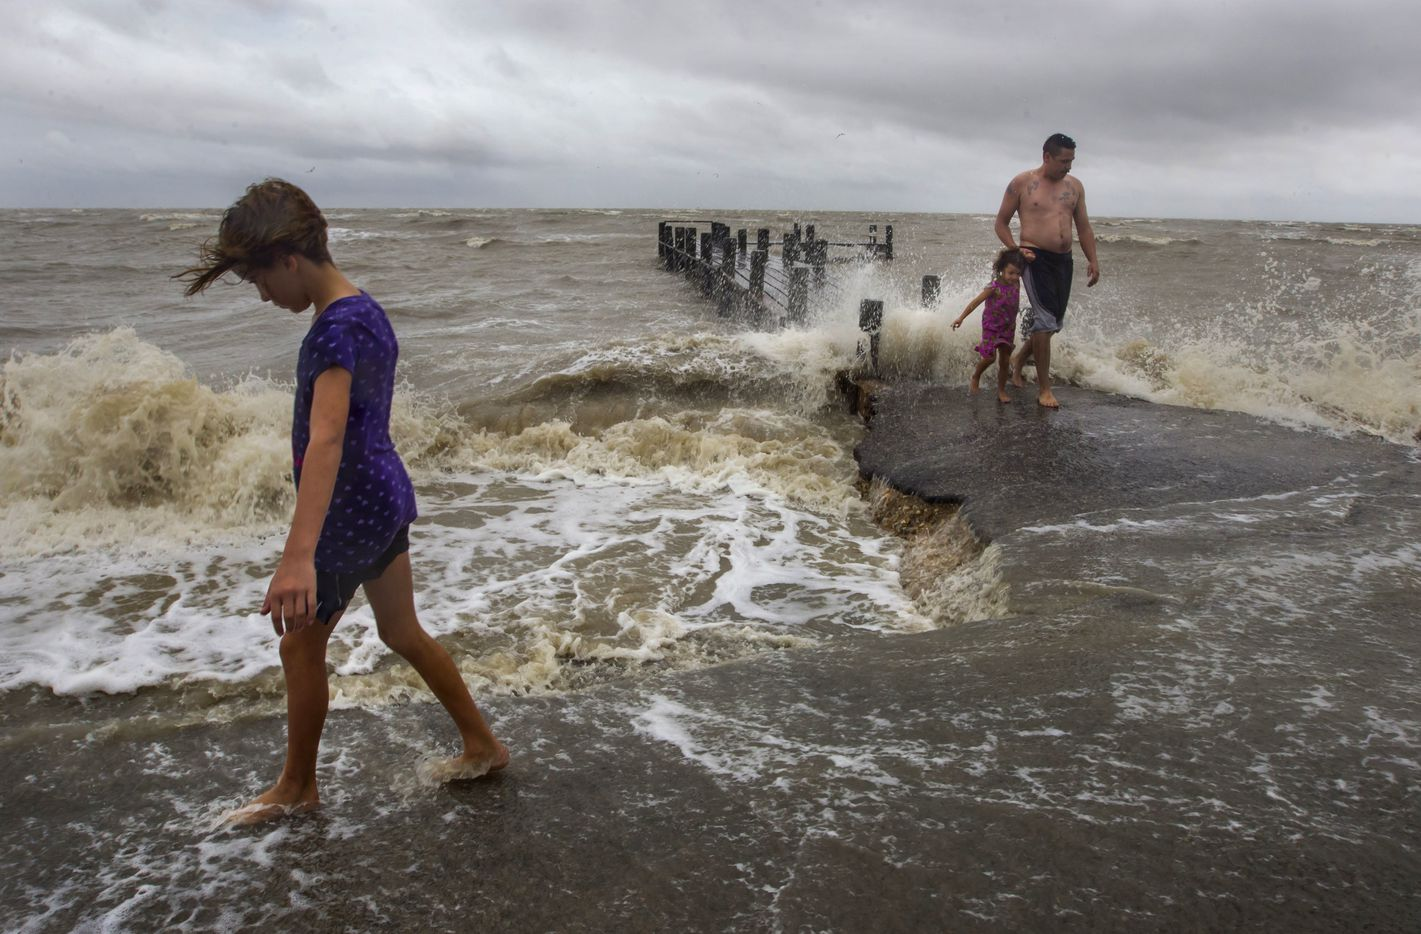 Serenity McGinnis, 10, walks along the shore with her father Jesse and sister Rebella, right, near a pieras Hurricane Harvey approaches the Texas coast Friday, Aug. 25, 2017 in Bacliff, Texas. Harvey intensified into a hurricane Thursday and steered for the Texas coast with the potential for up to 3 feet of rain, 125 mph winds and 12-foot storm surges in what could be the fiercest hurricane to hit the United States in almost a dozen years.